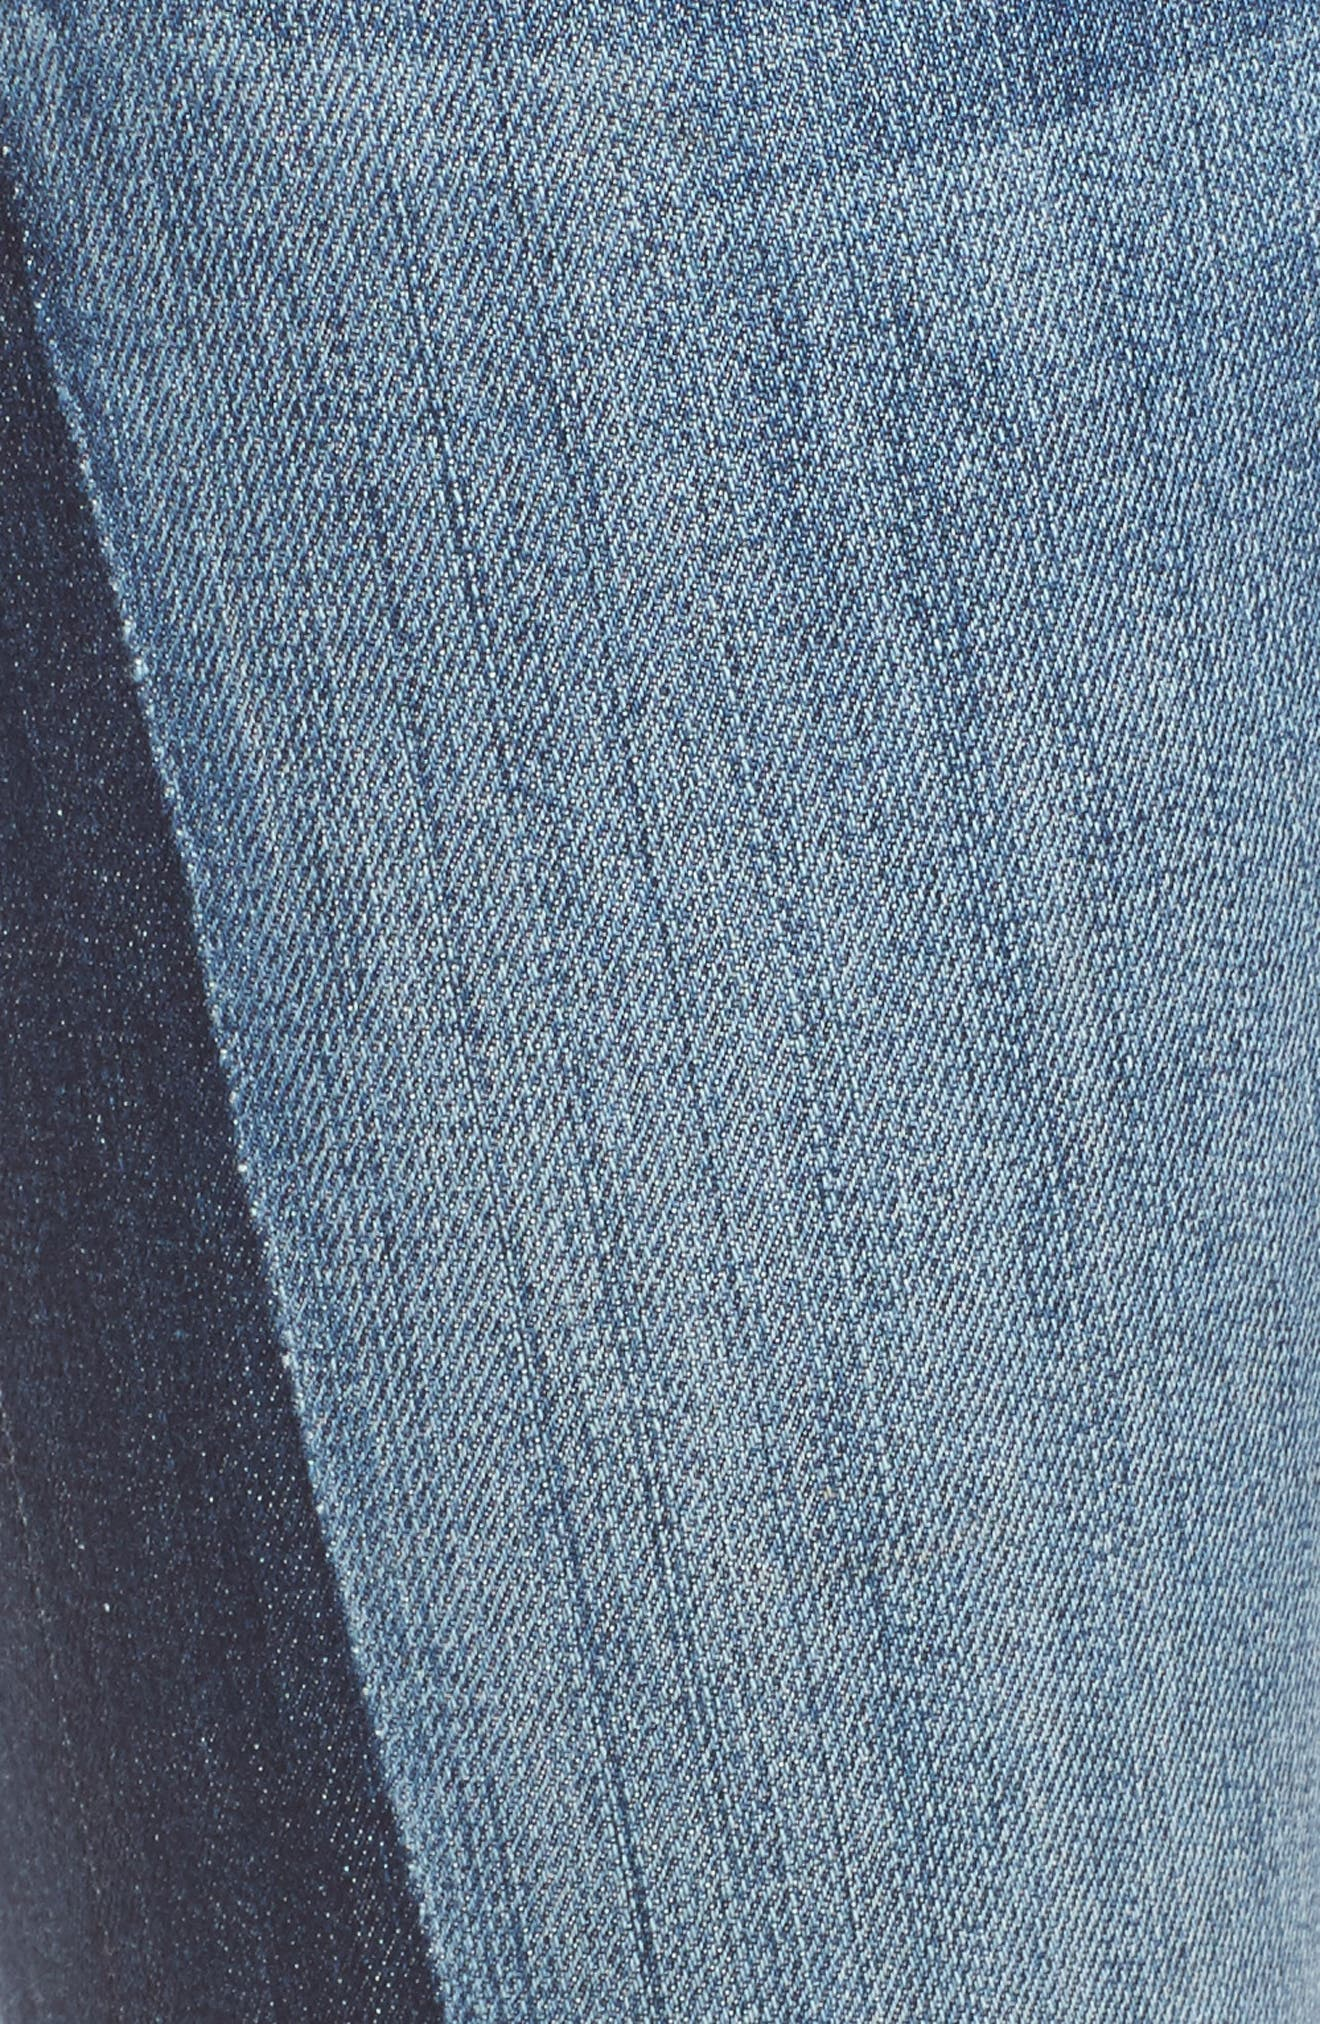 Reese Patch Jeans,                             Alternate thumbnail 7, color,                             Transforming